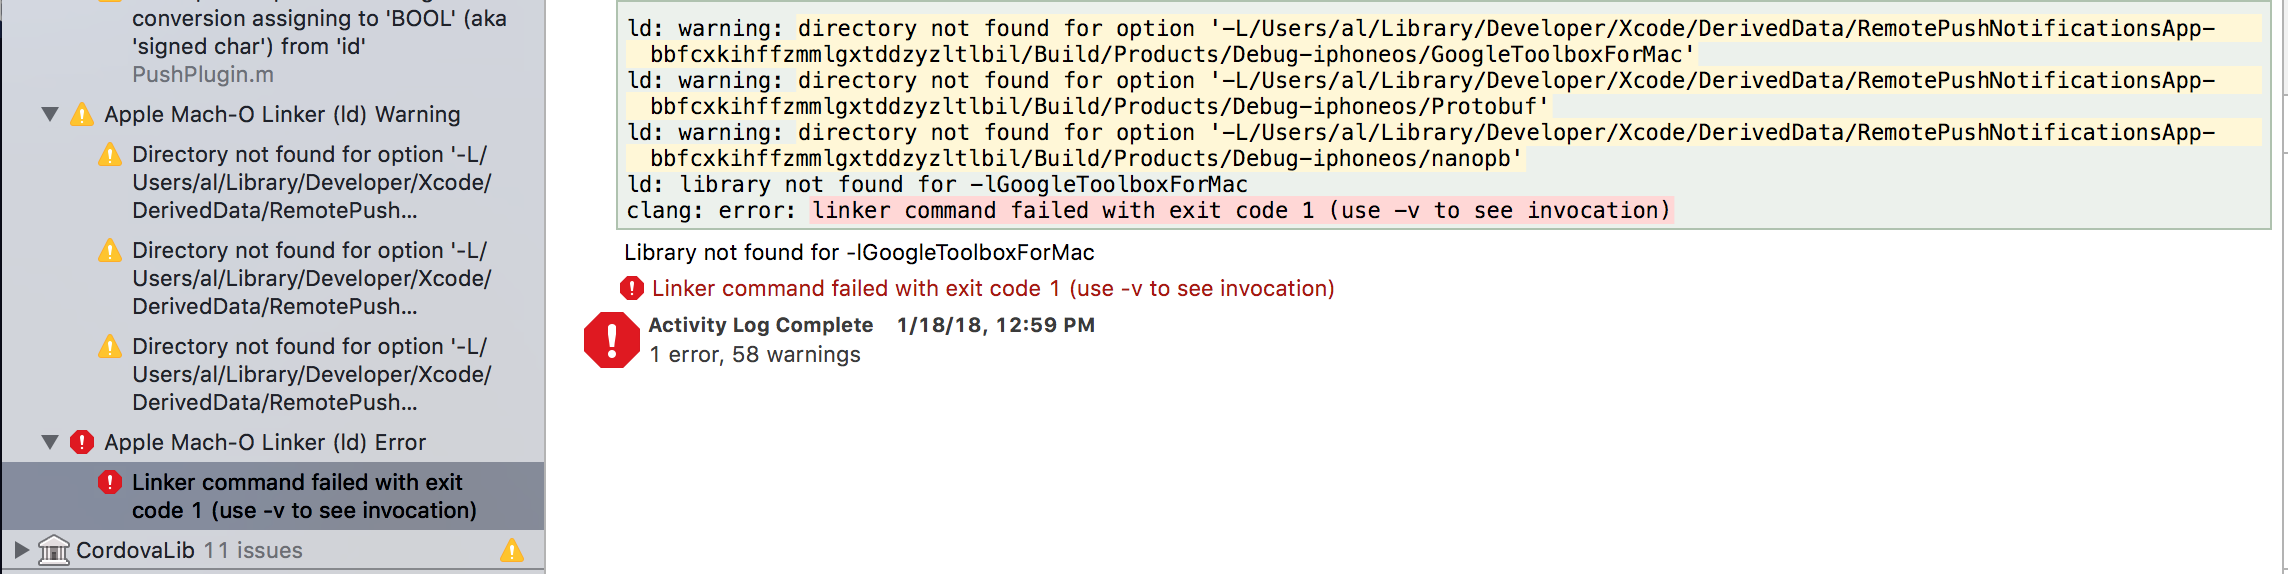 iOS FCM] Library -lGoogleToolboxForMac not found on Xcode